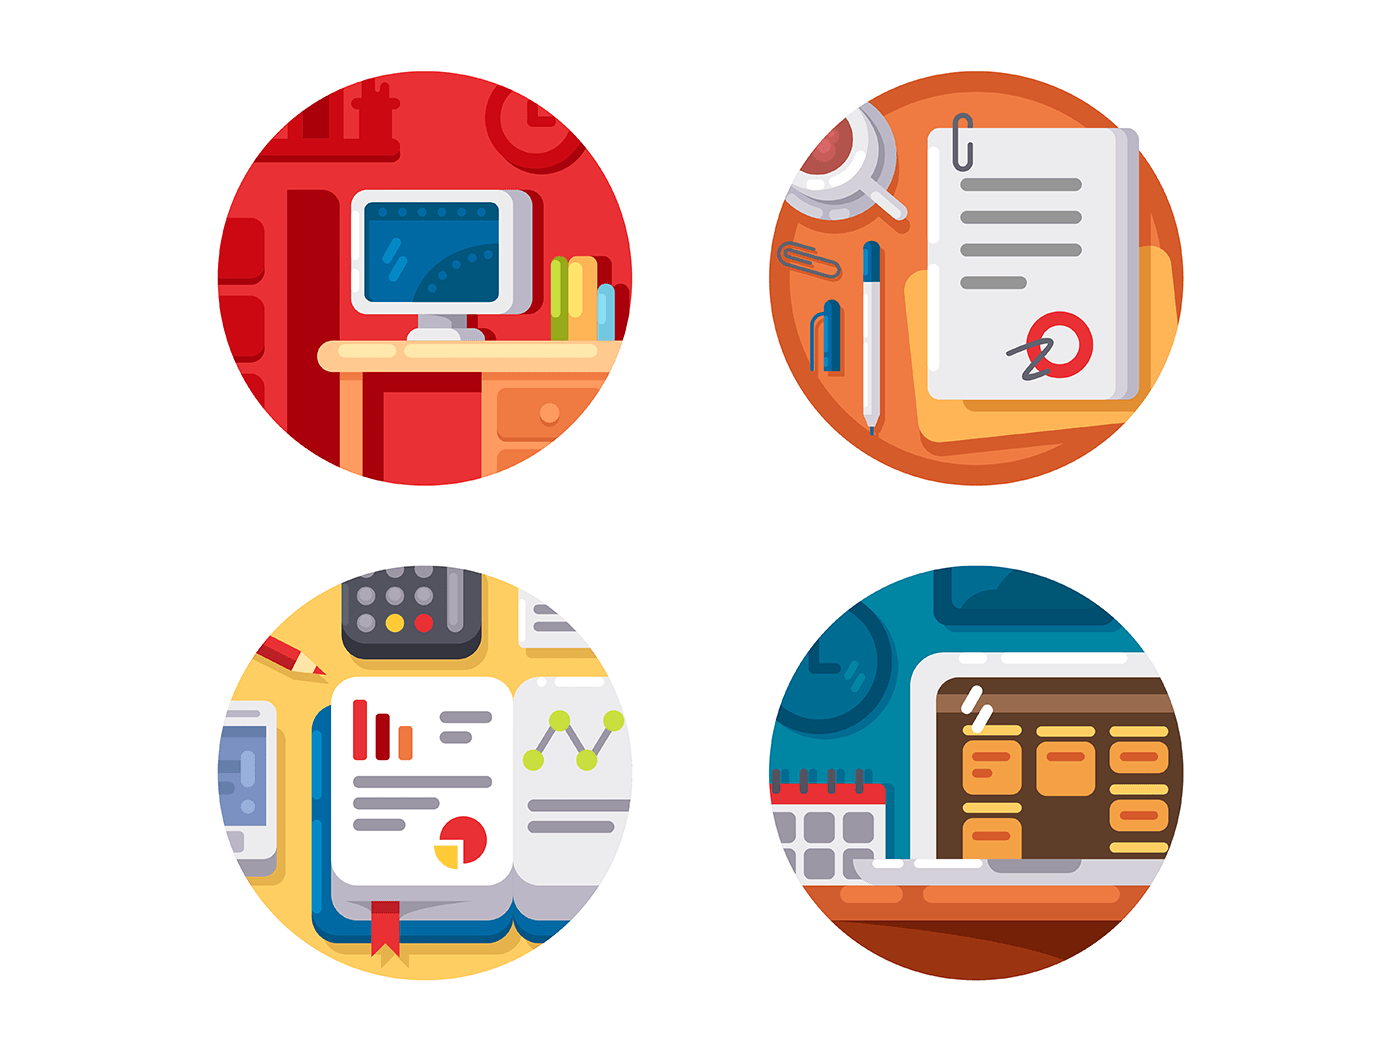 Creating business or creative project icons